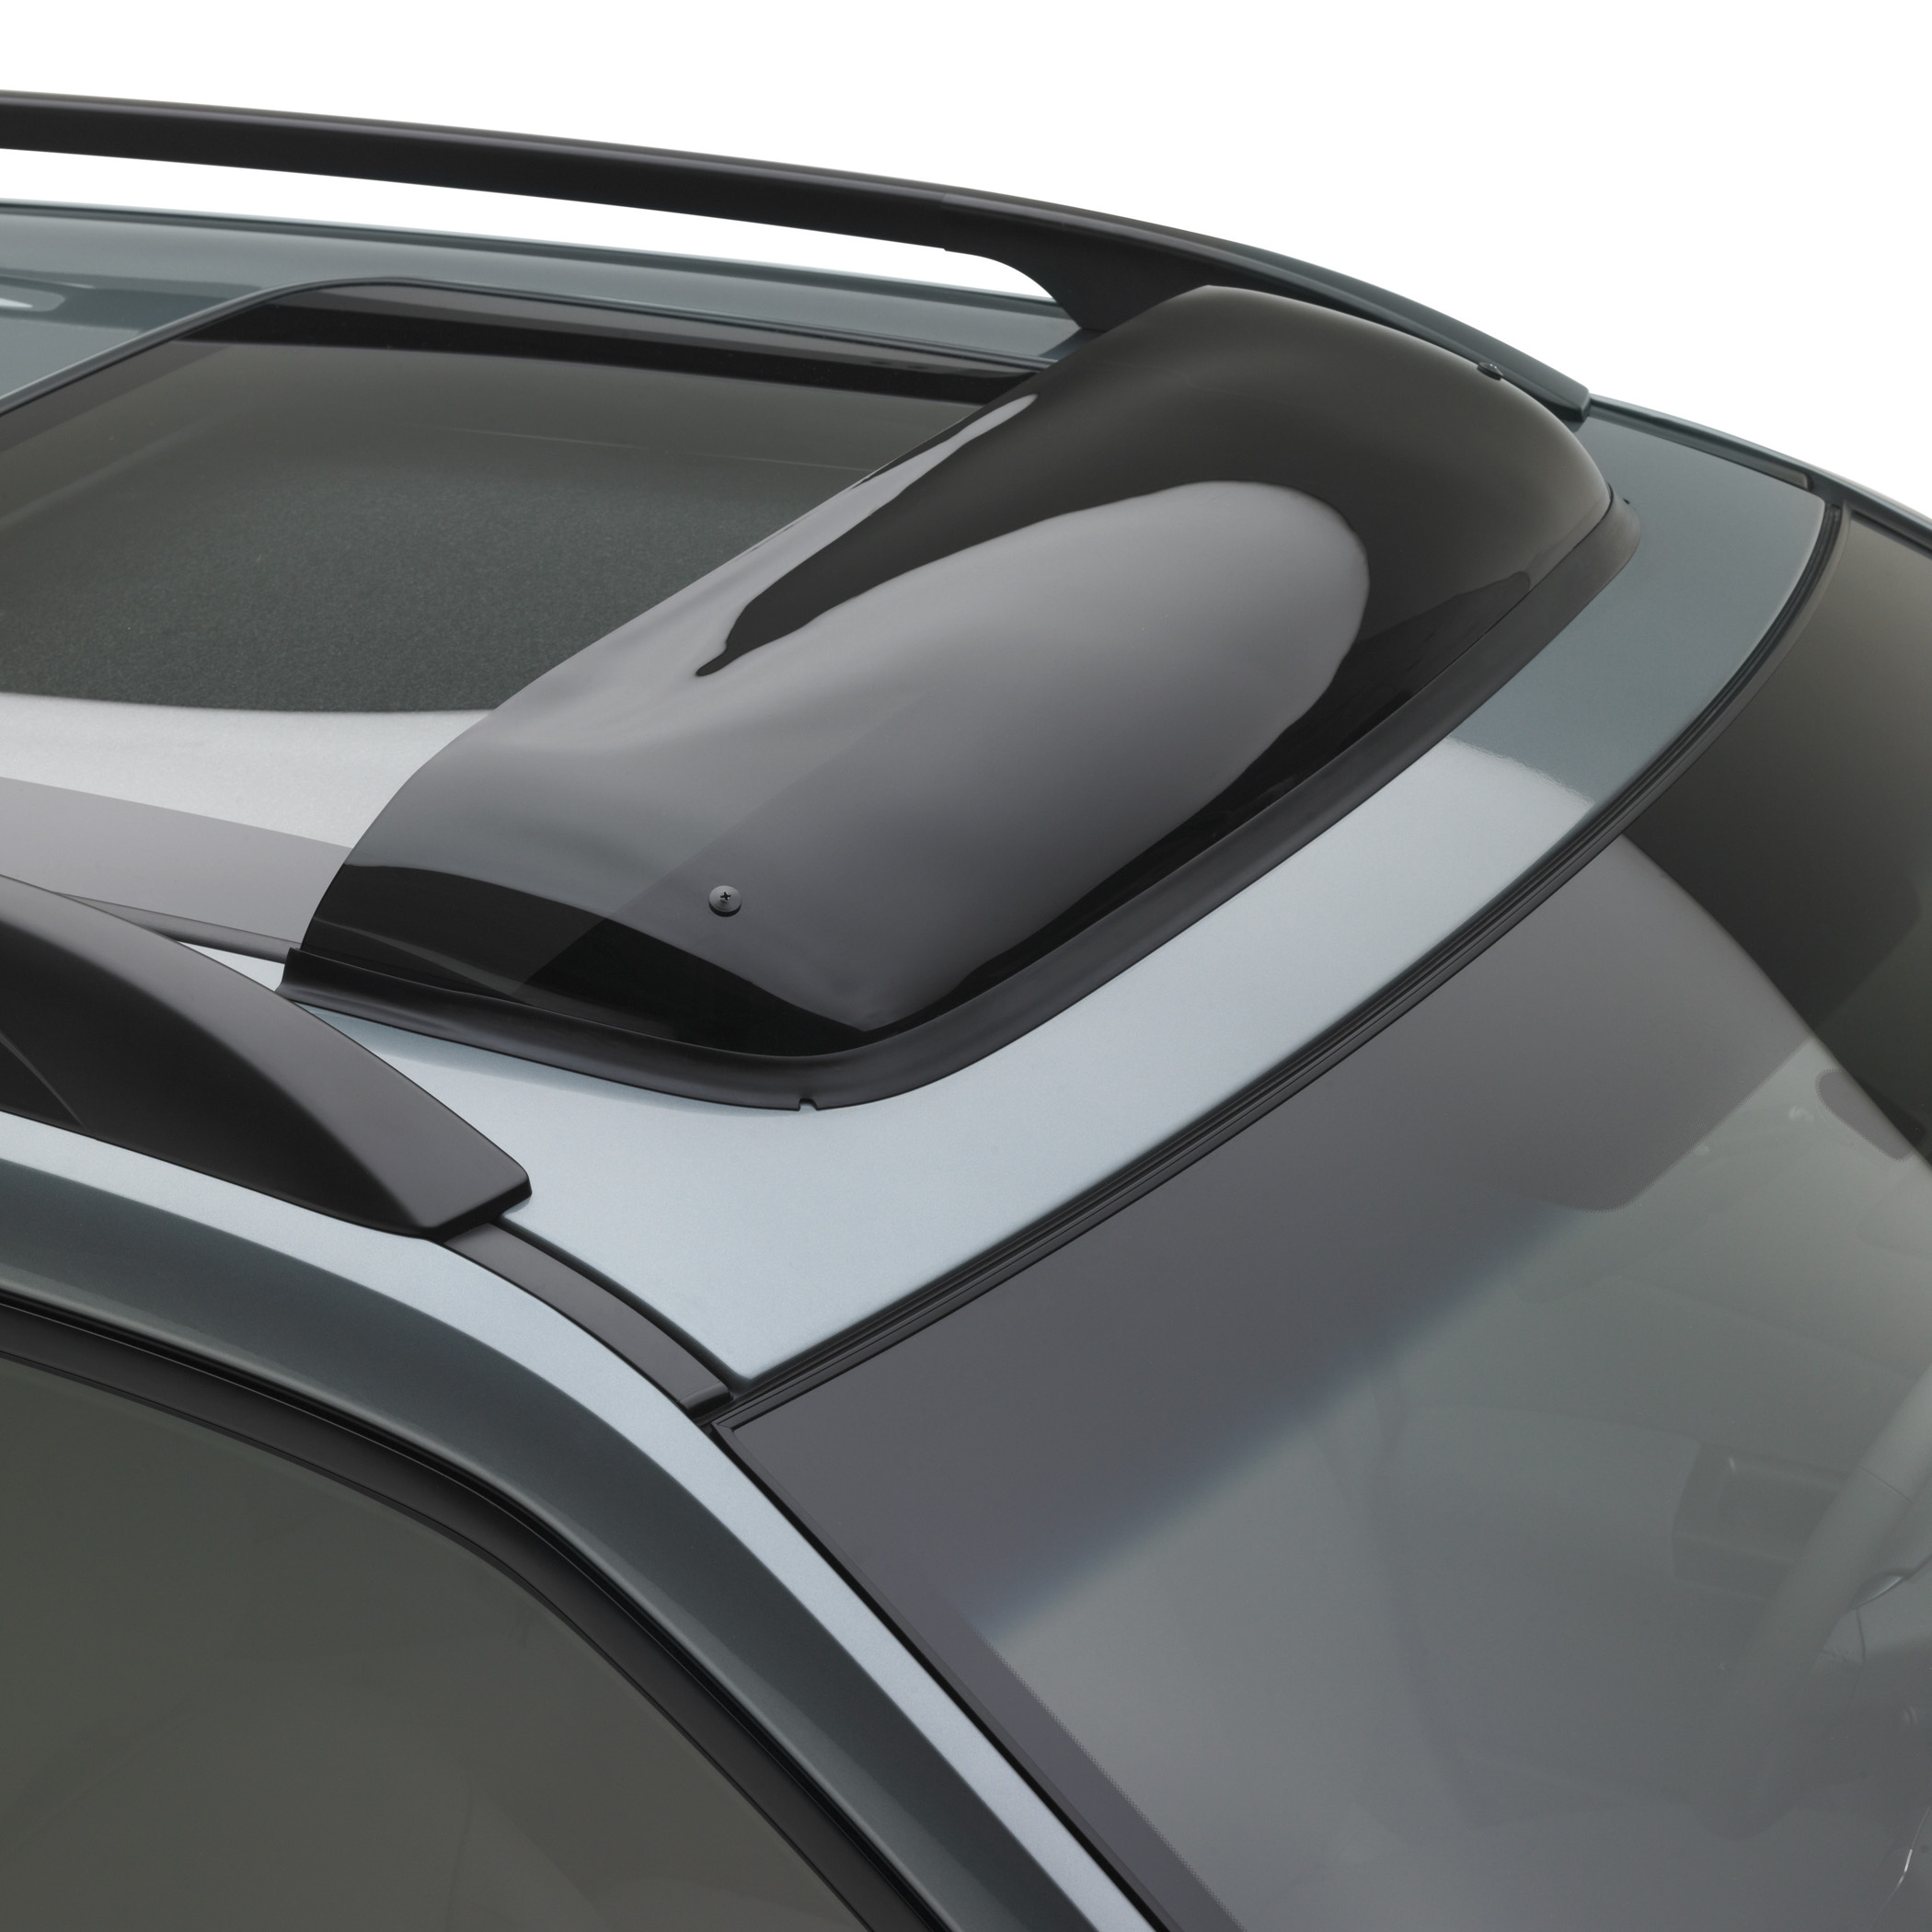 Subaru Forester Moon Roof Air Deflector Moonroof Defl Kit Used Pnot Extended Carrier